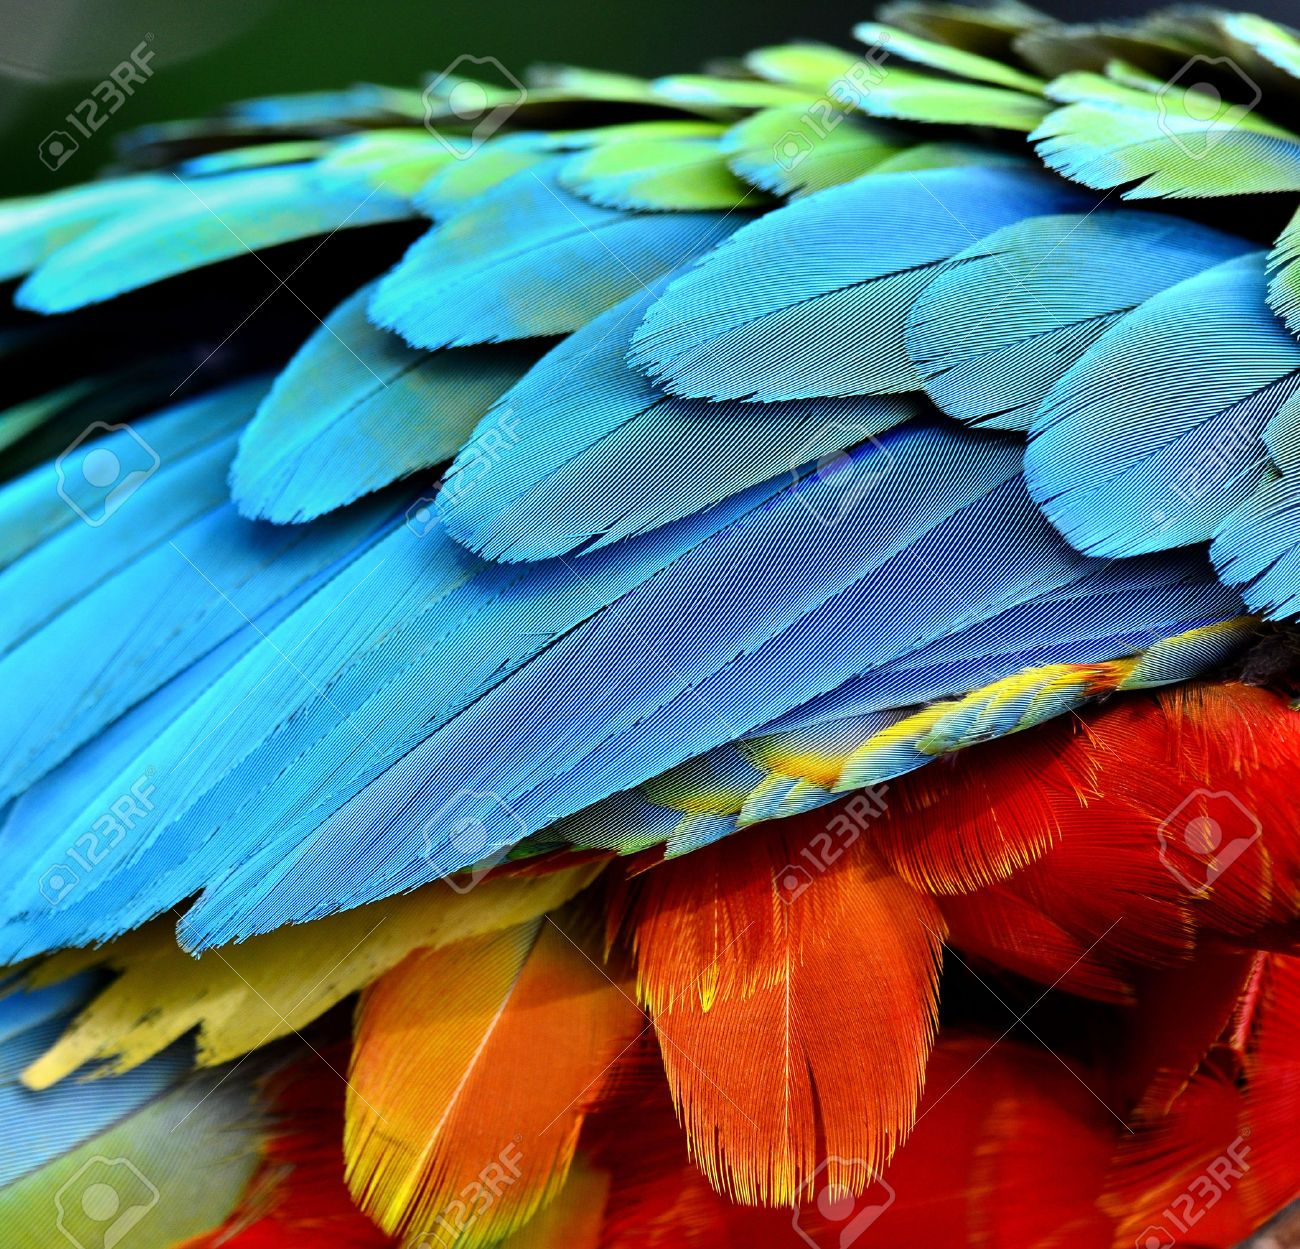 Close Up Of Parrot And Macaw Bird Feathers Bird Photography Parrot Feather Bird Feathers